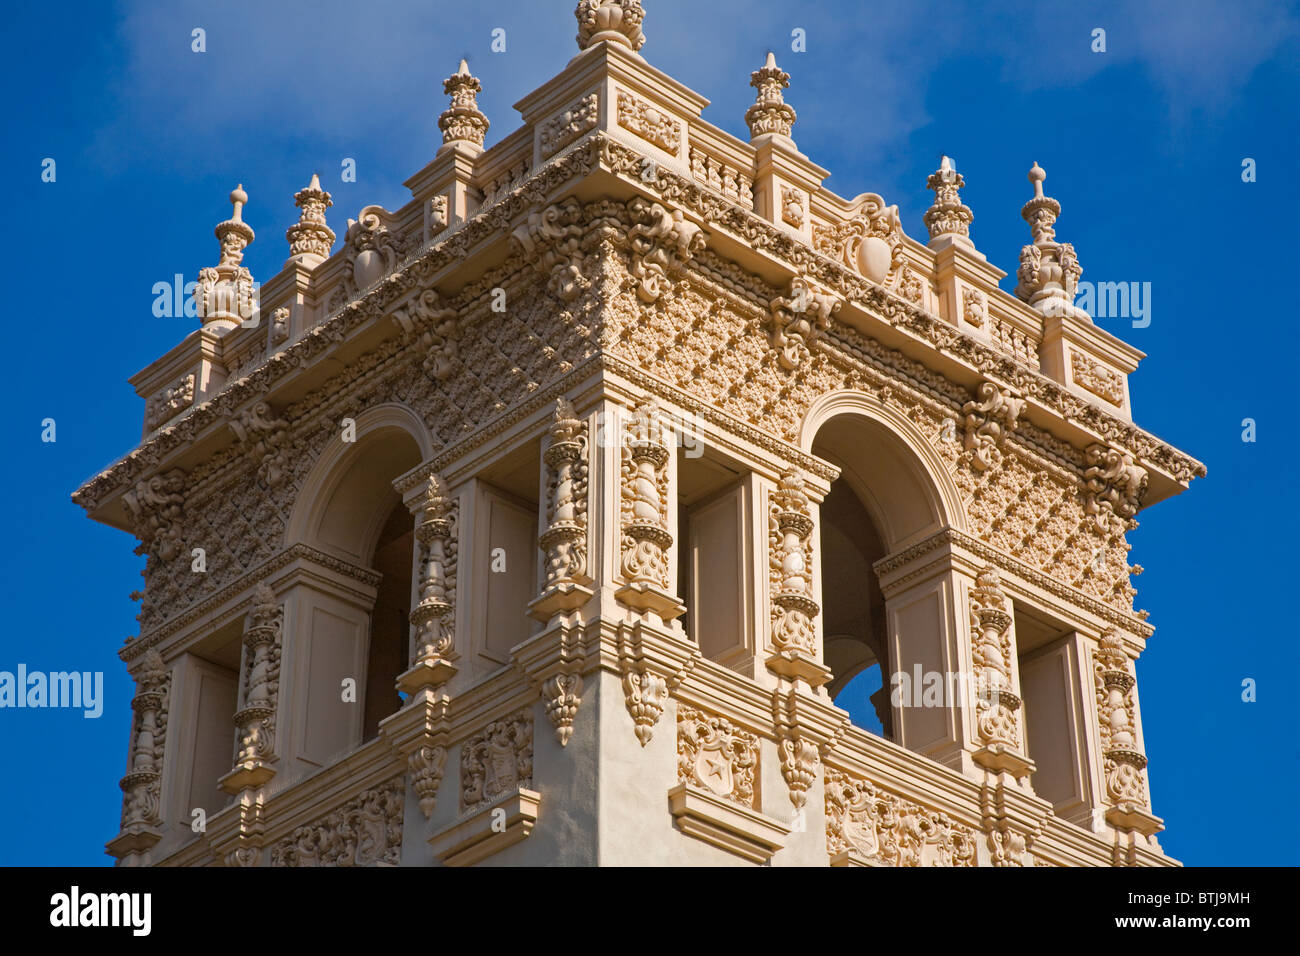 The elaborate tower of the HOUSE OF HOSPITALITY located in BALBOA PARK - SAN DIEGO, CALIFORNIA - Stock Image